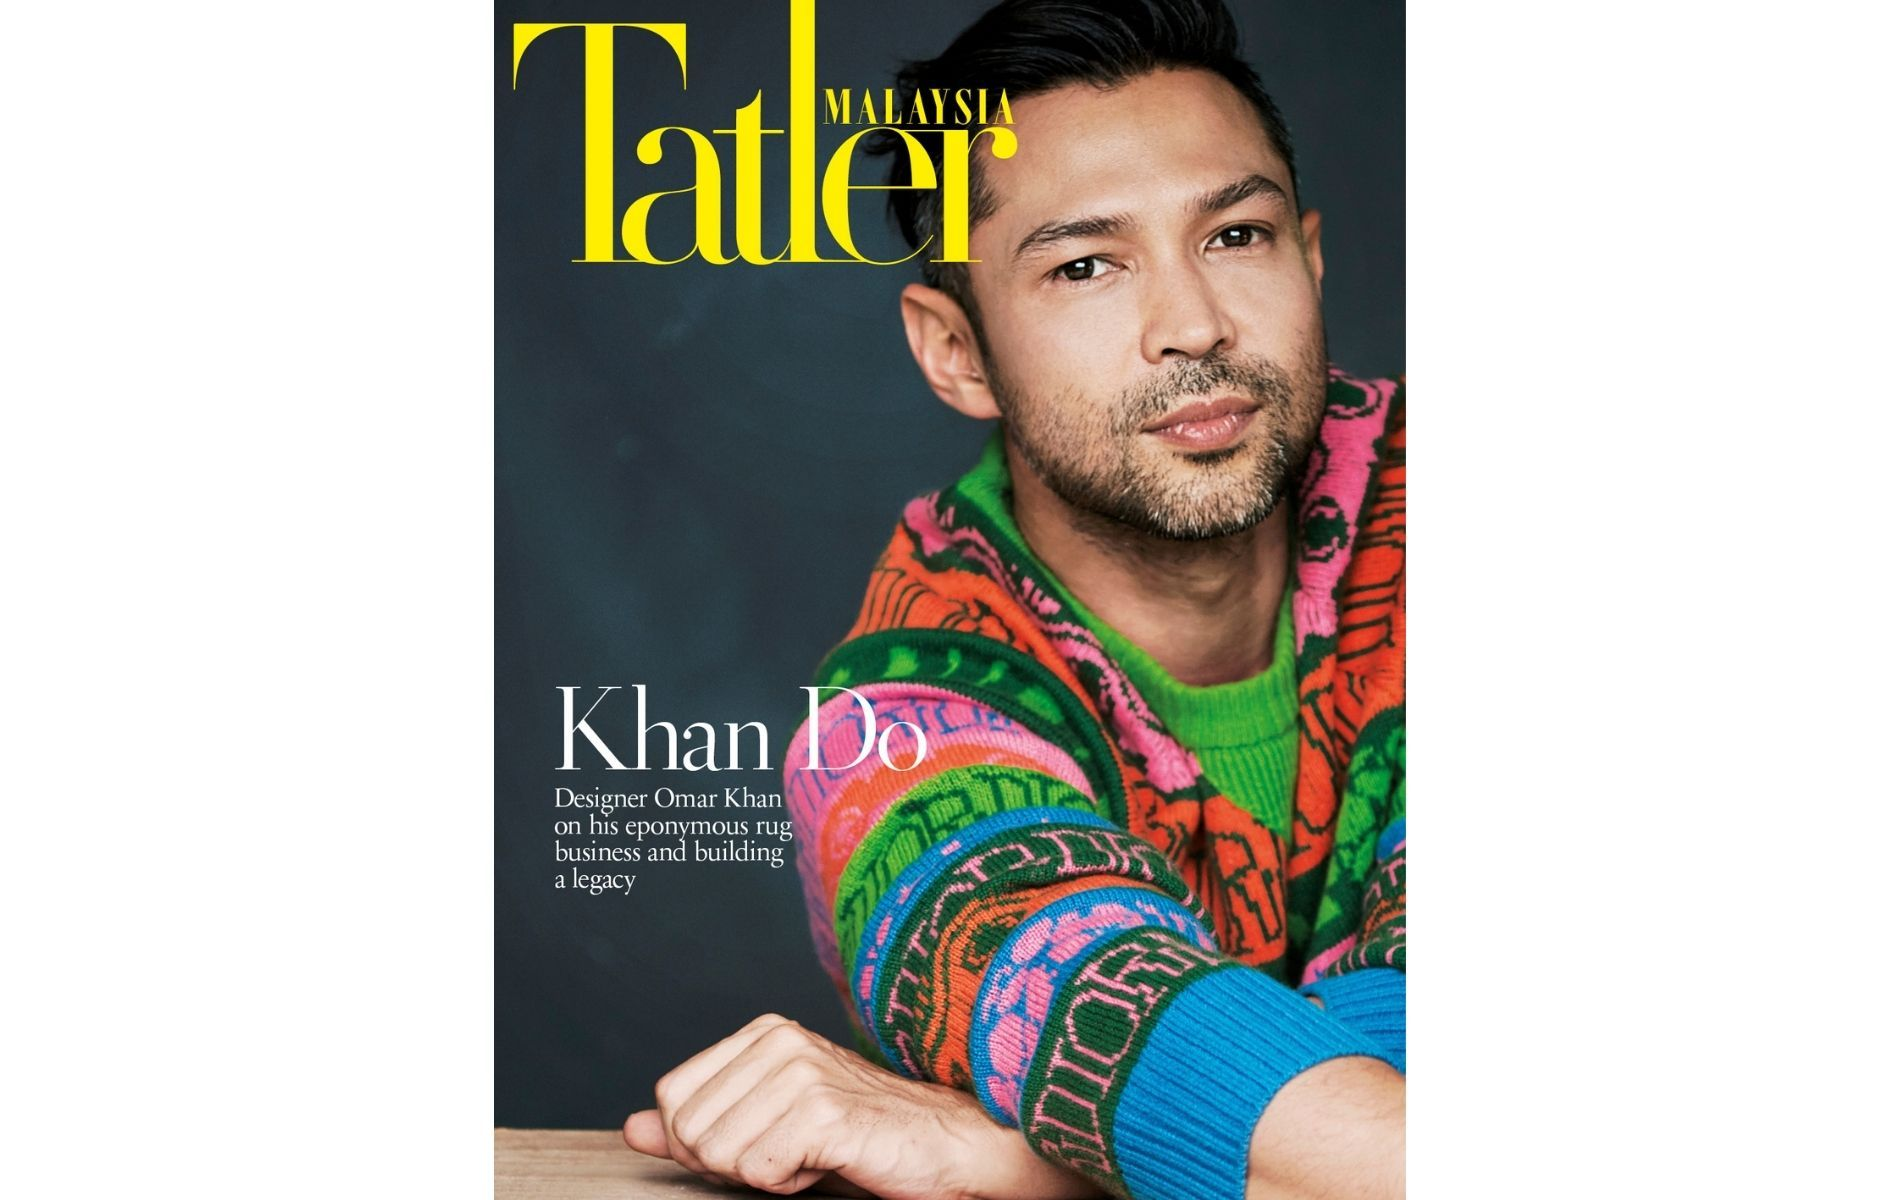 Tatler Malaysia September Issue Out Now For Free On Magzter